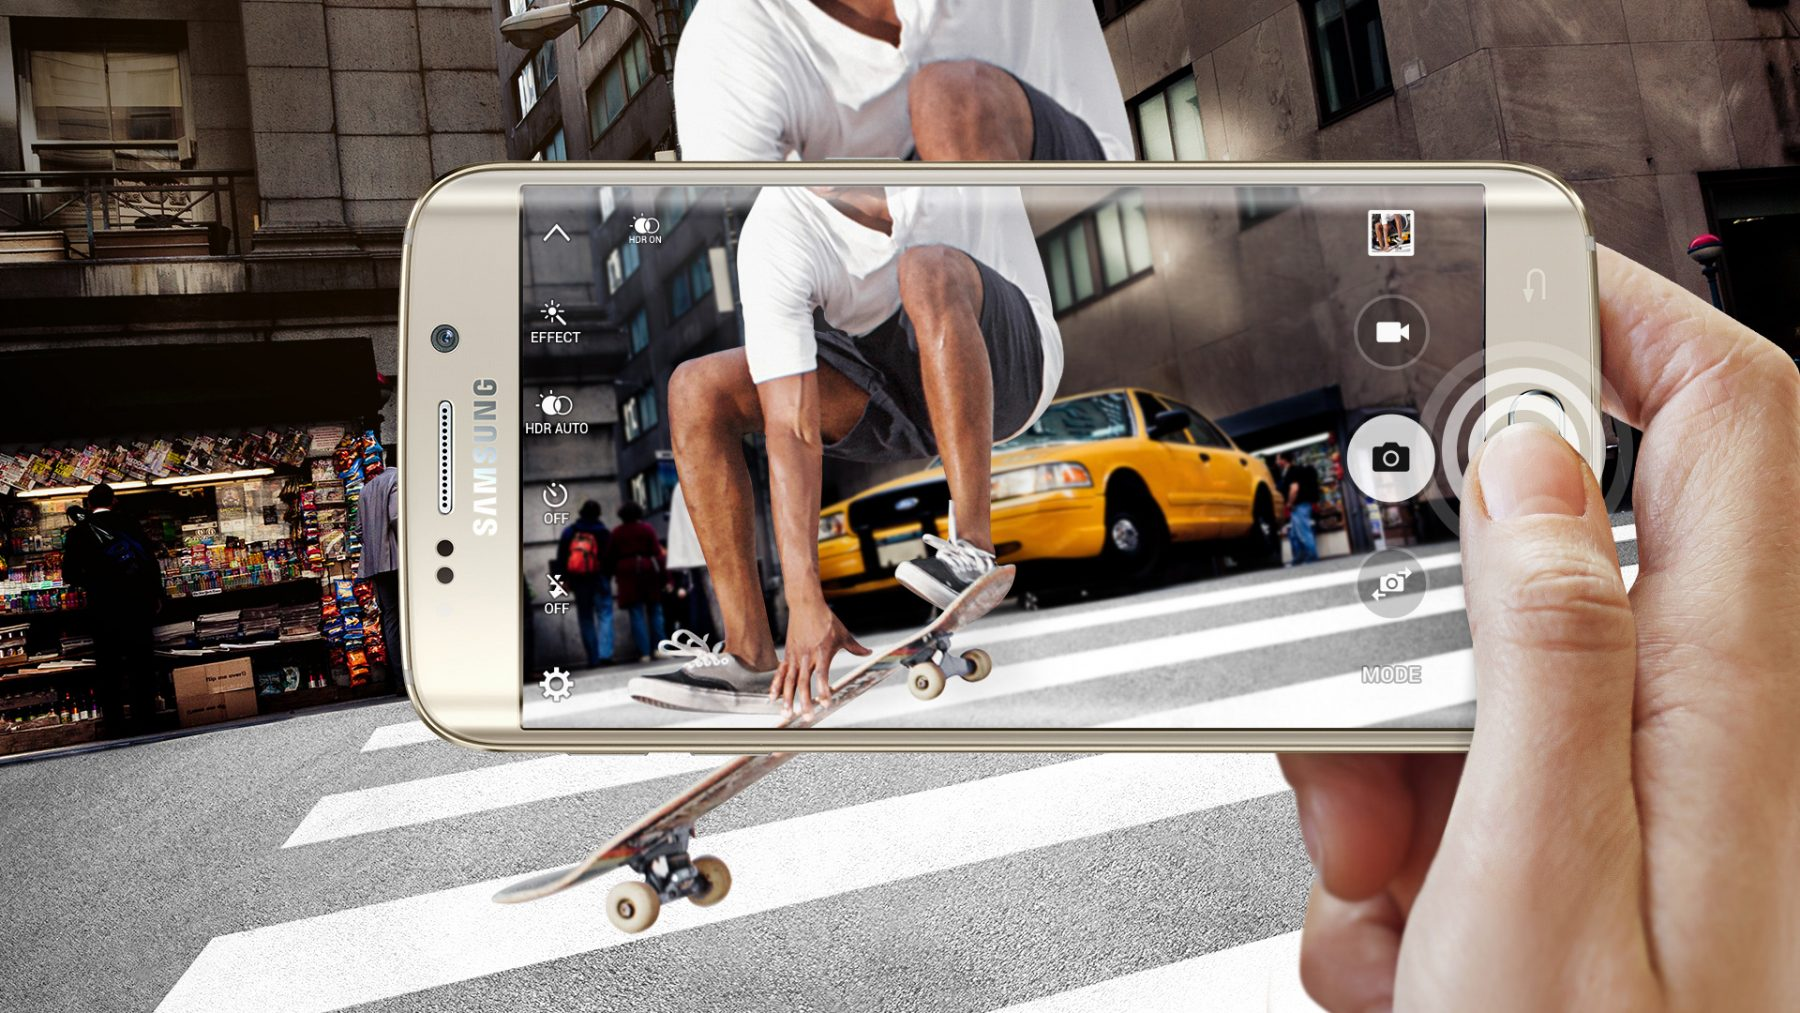 samsung galaxy s6 camera features, review, quality